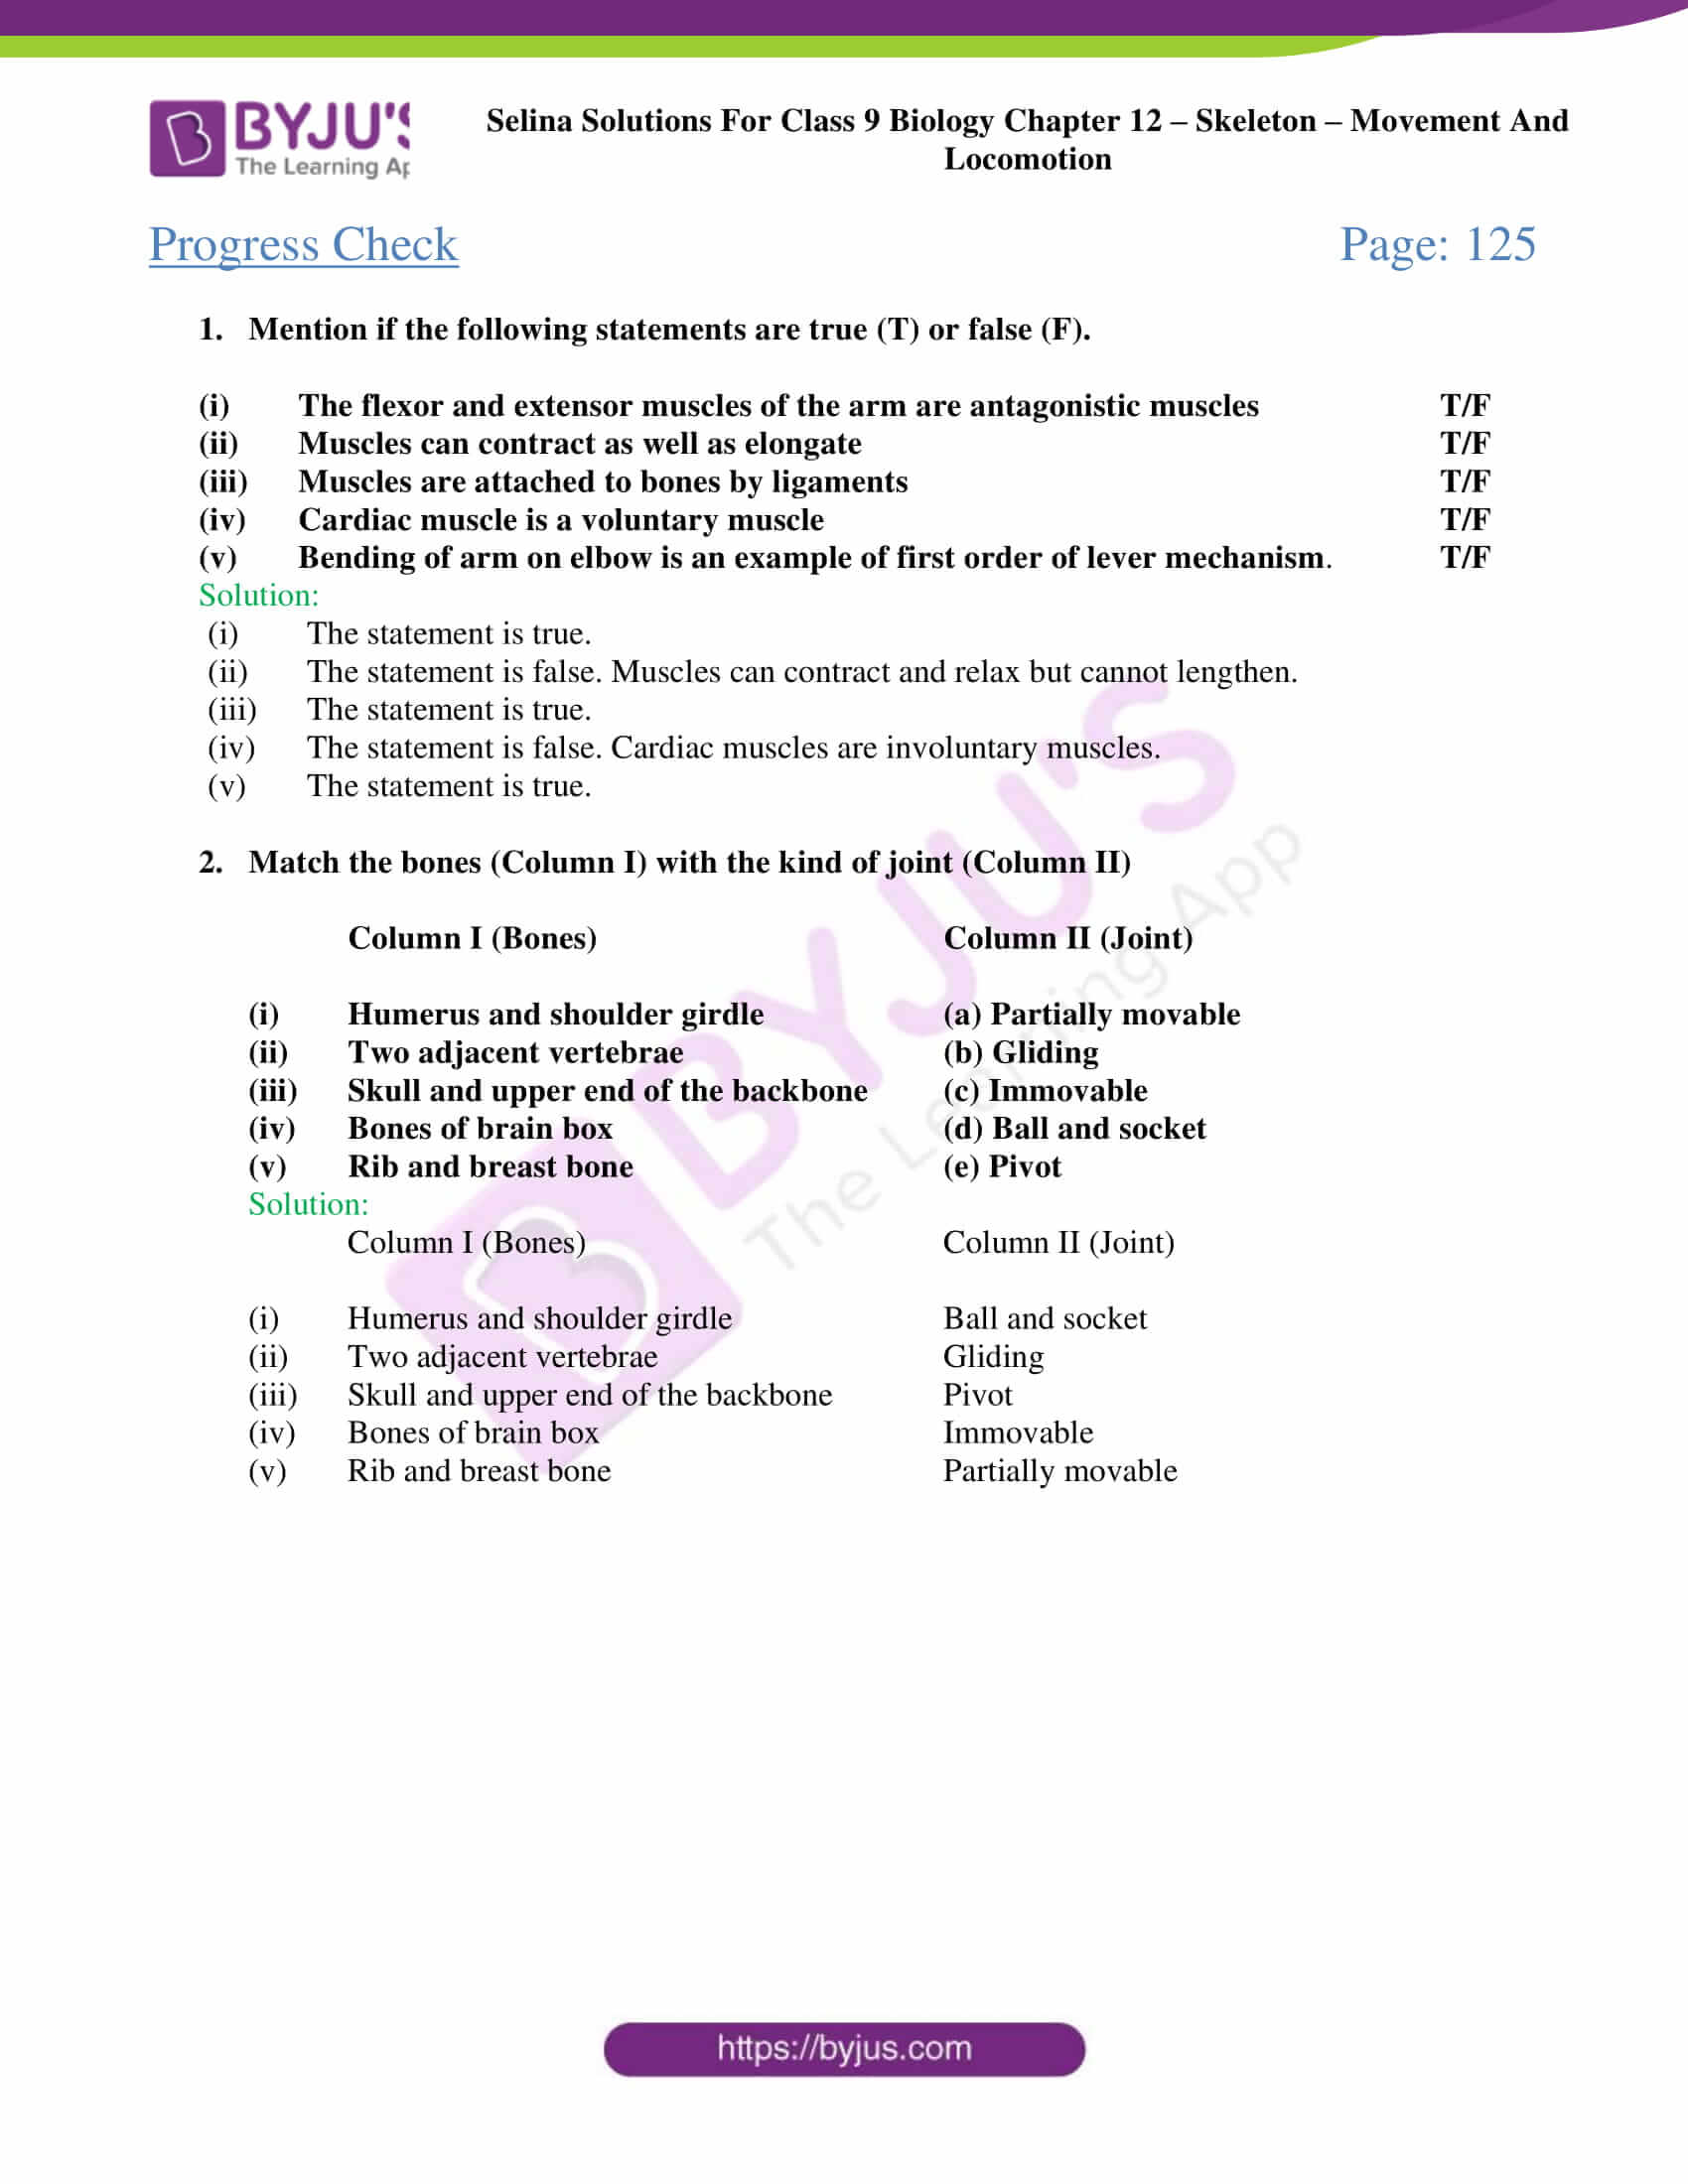 selina Solutions For Class 9 Biology Chapter 12 part 3